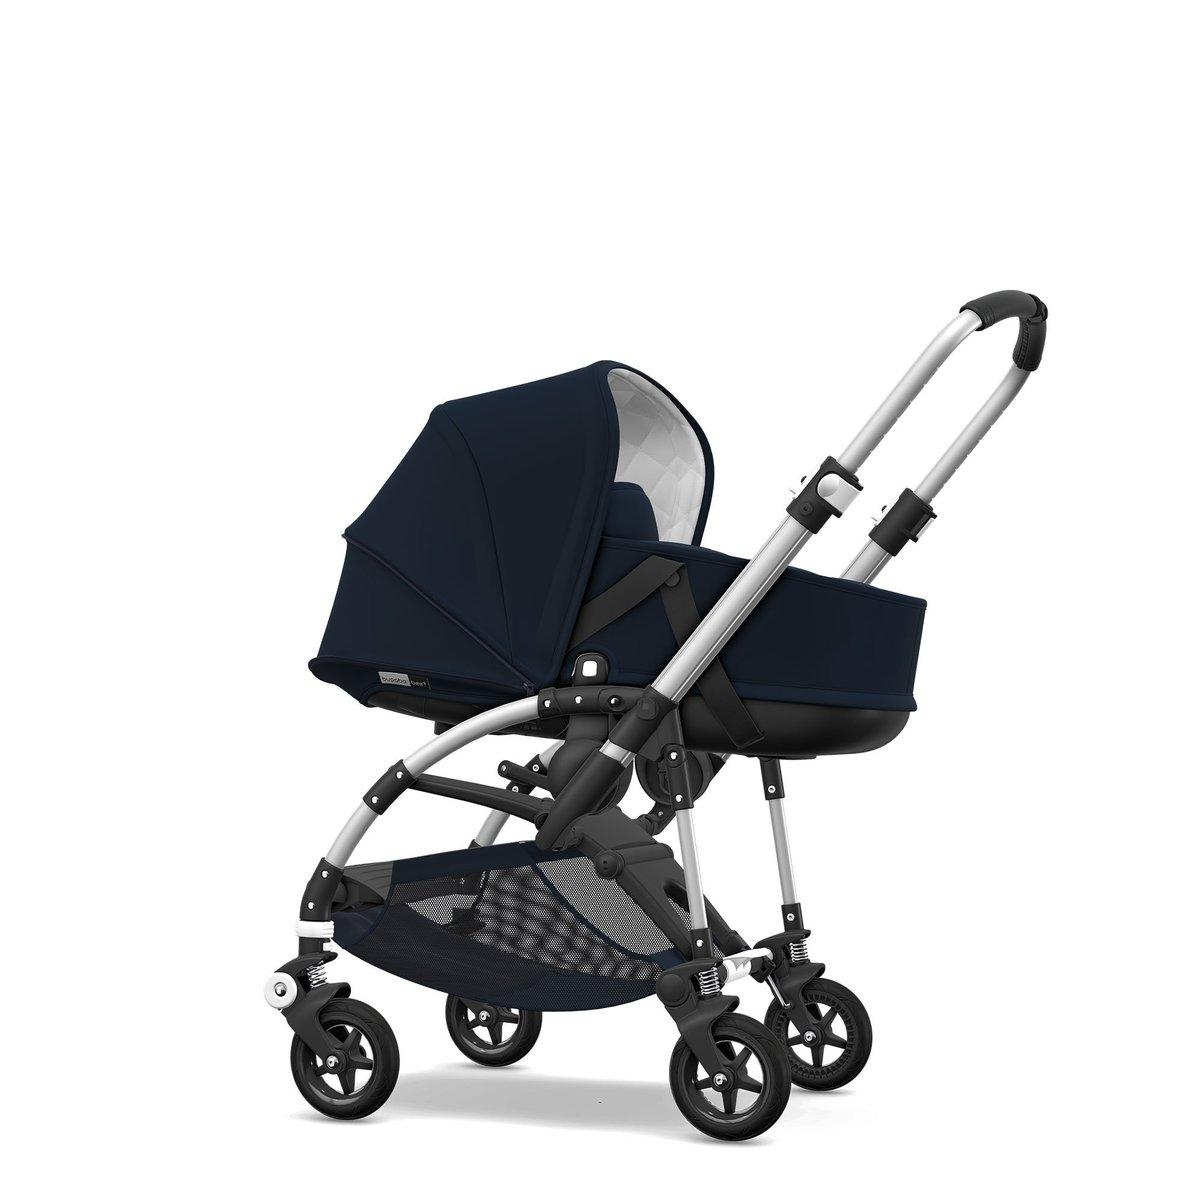 Most Compact Stroller For Newborn Bugaboo Bee5 Classic Complete Snuggle Bugz